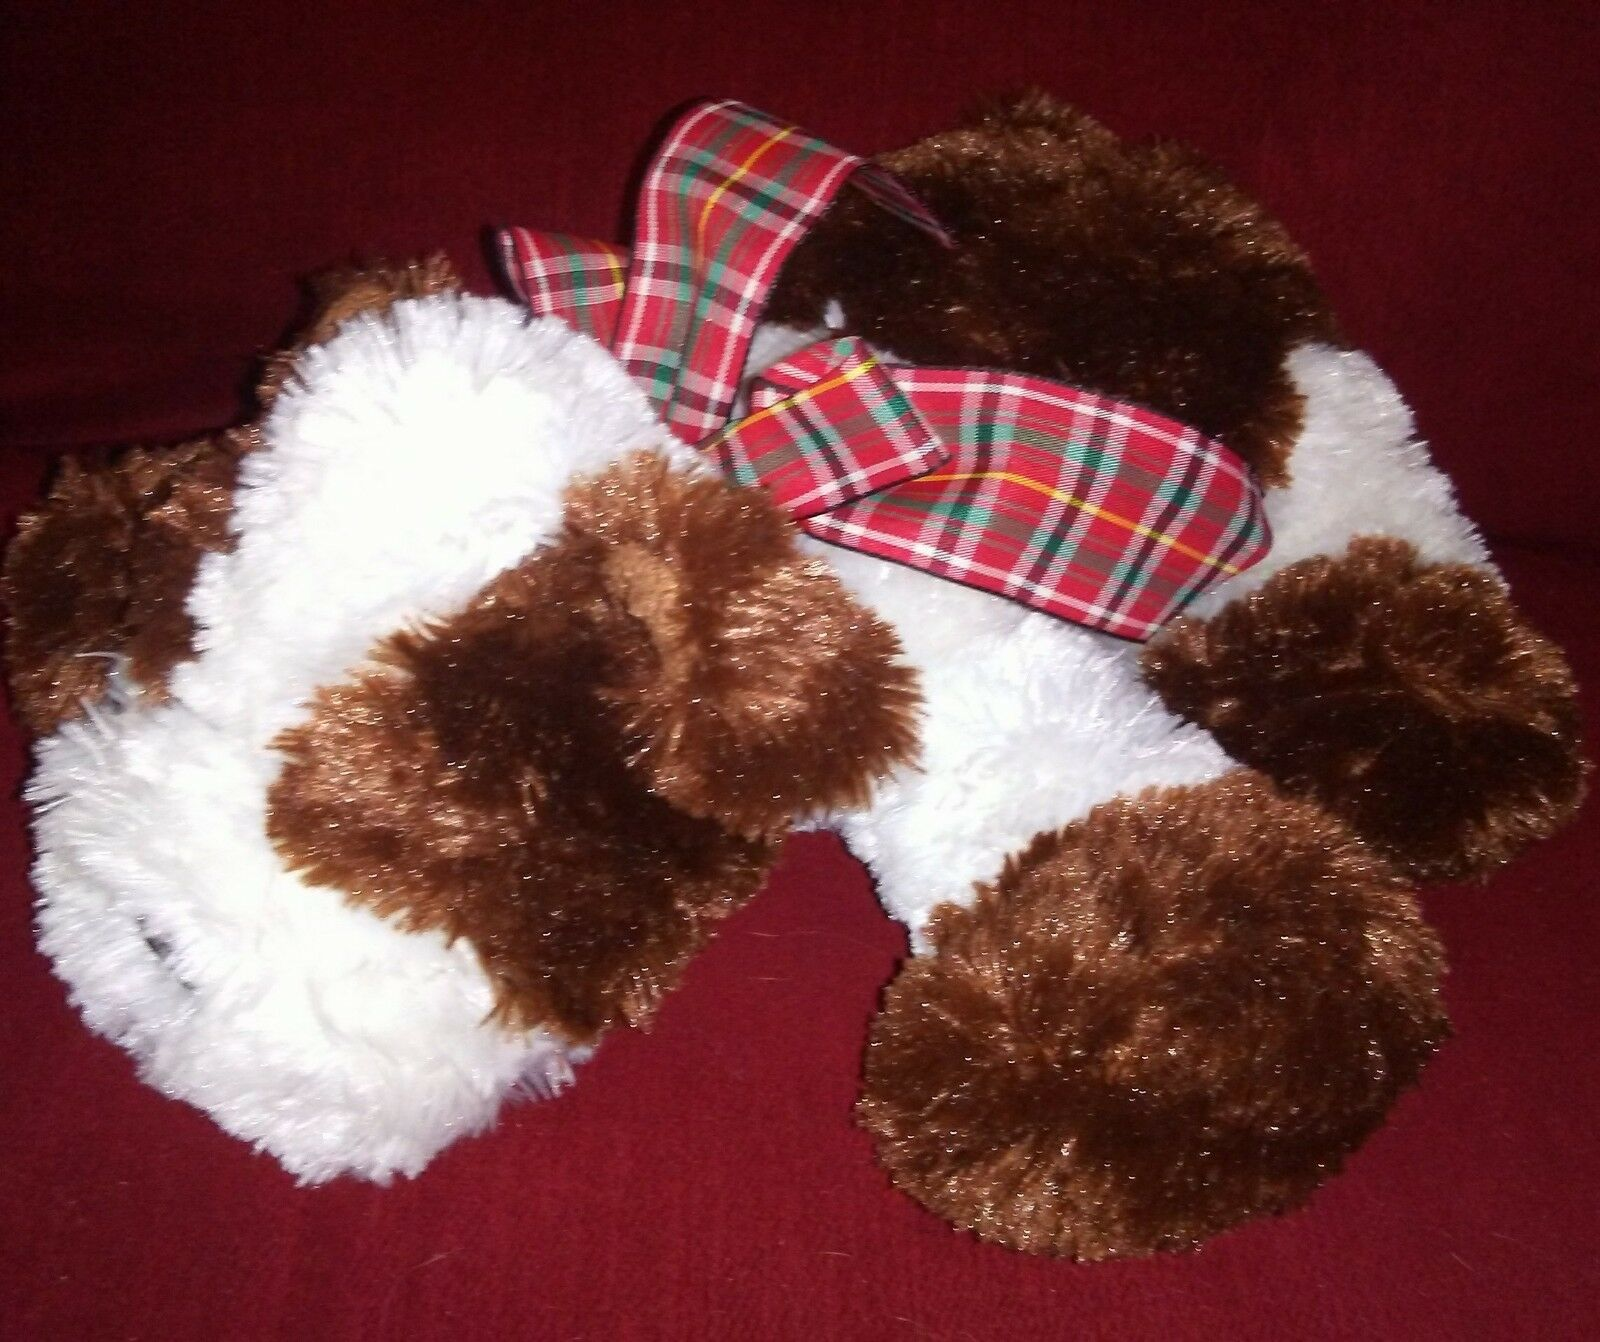 Target Animal Adventure Puppy Dog Brown Cream Soft Fur 12in Plush Plaid Bow 2004